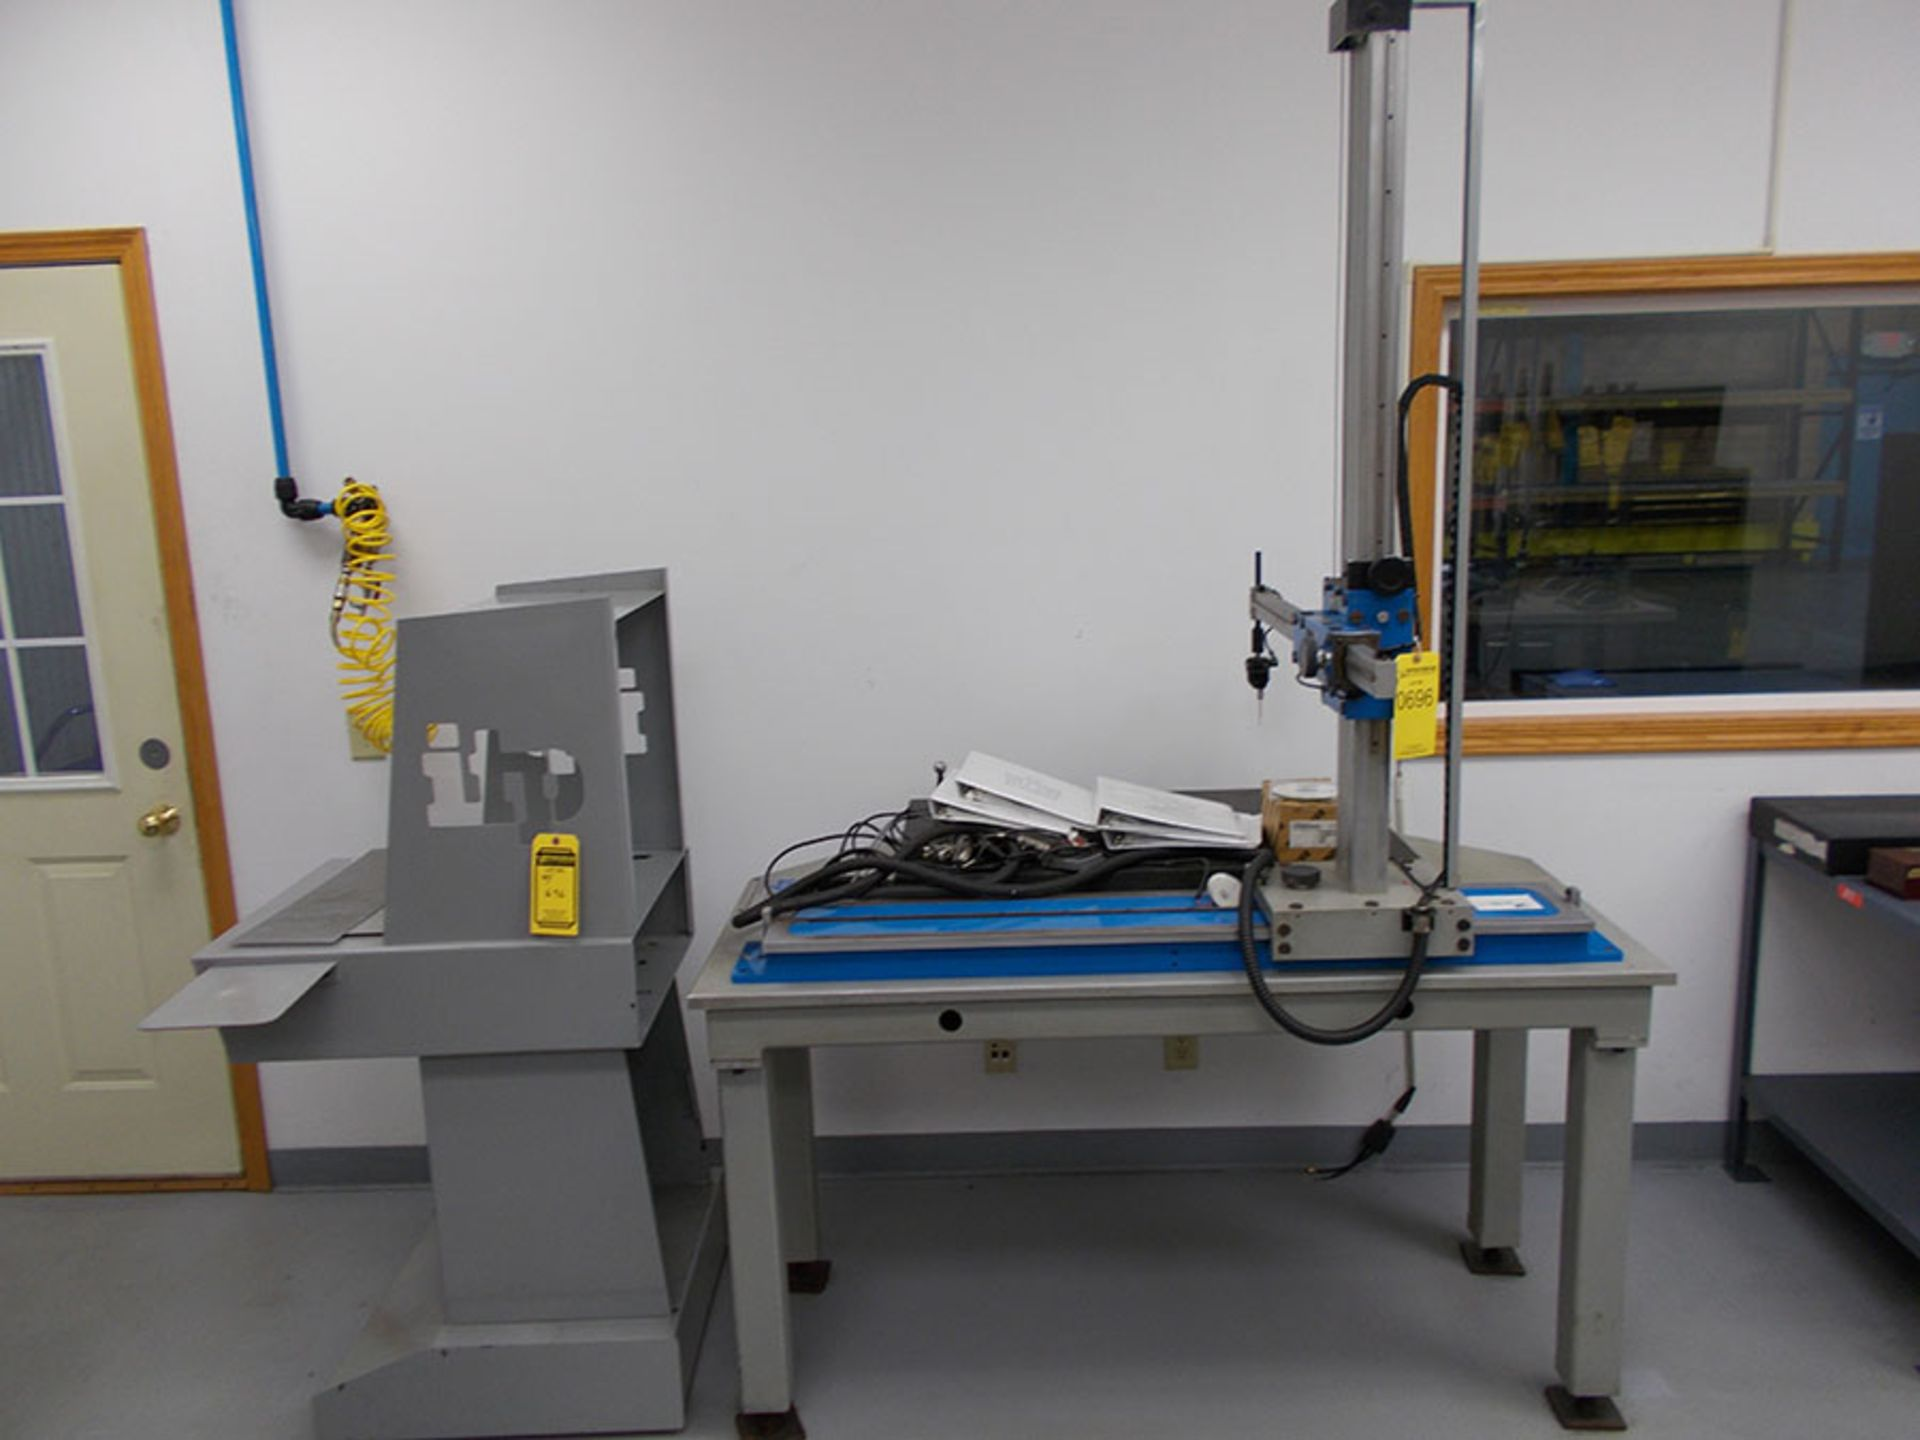 Lot 696 - ITP GROUP SURFACE INSPECTION MACHINE; S/N 003240